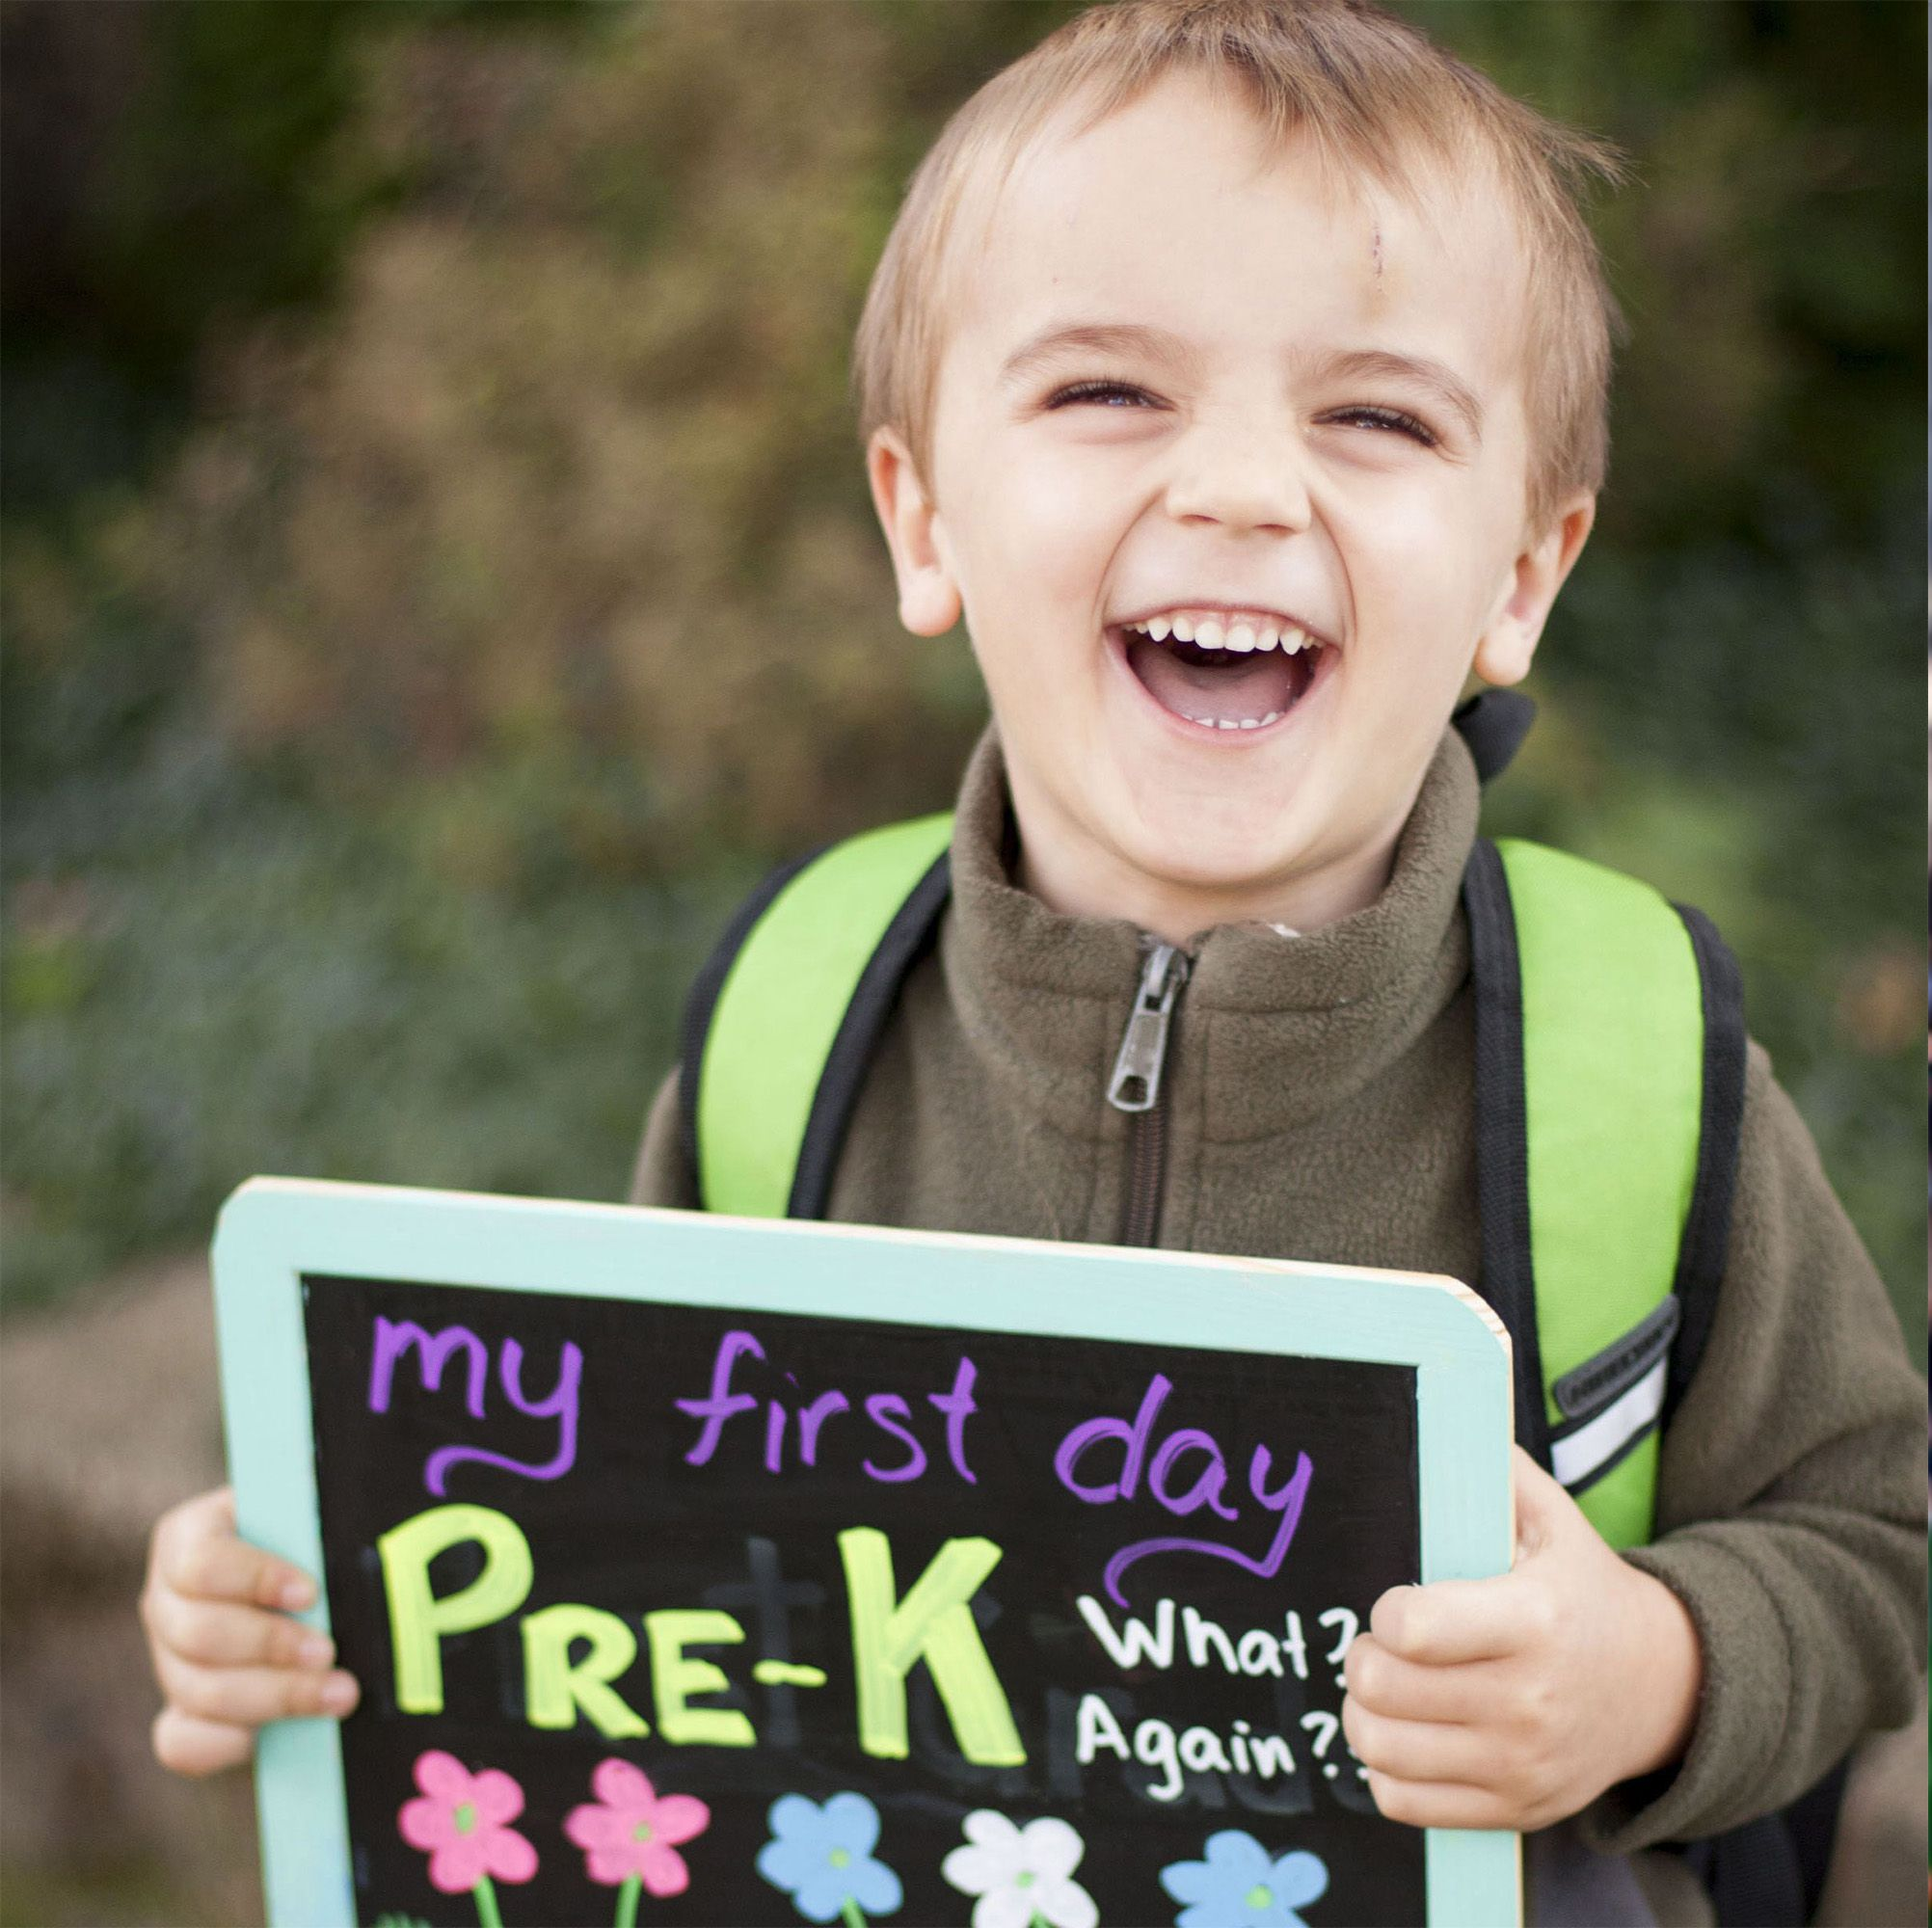 15+ Creative First Day of School Photo Ideas to Capture Your Kid's Personality